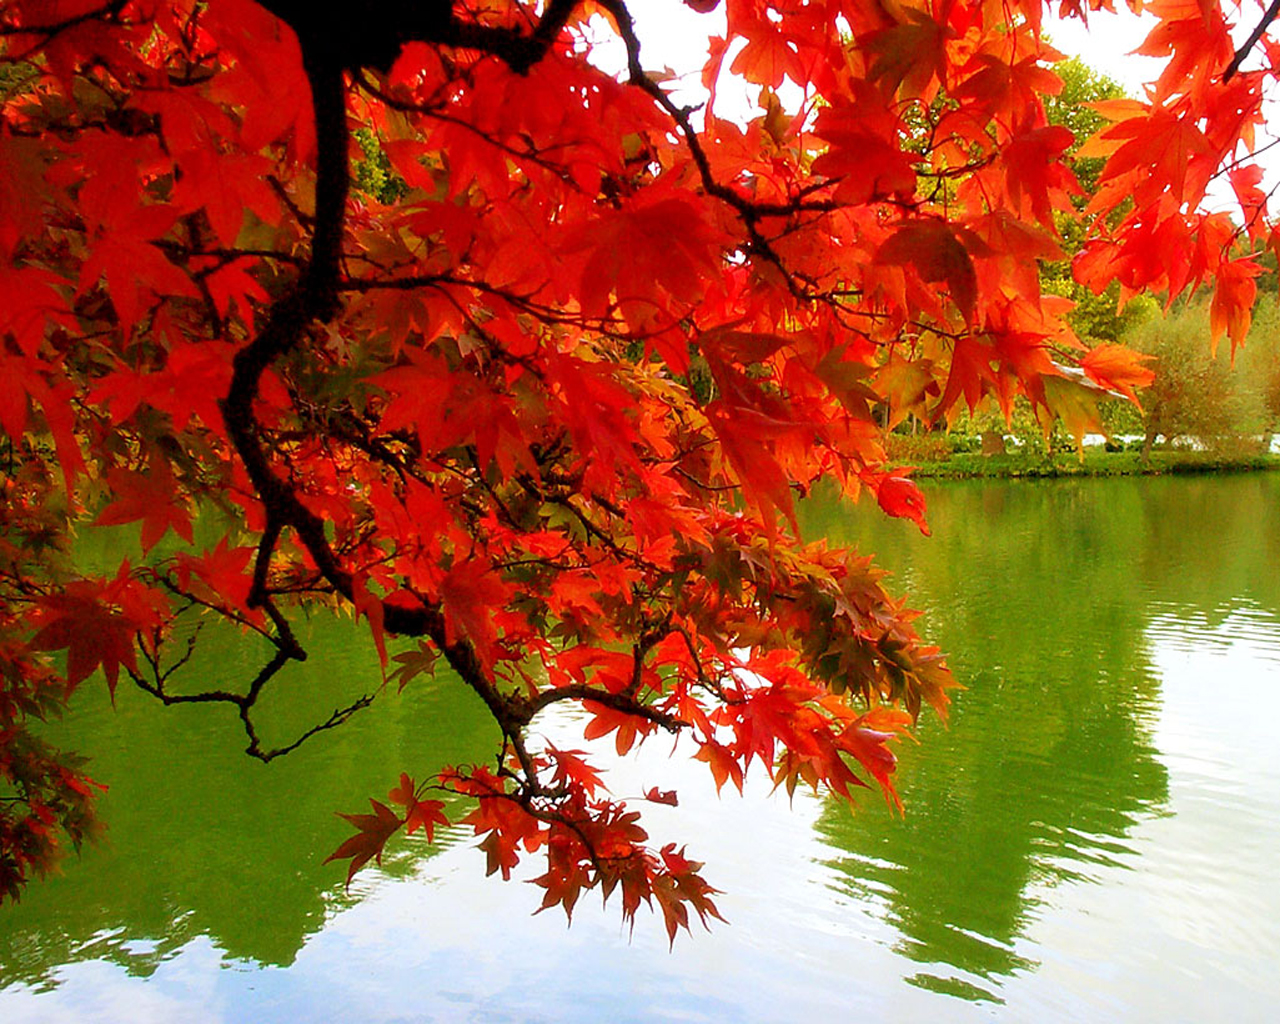 Much More Him: The Parable of the Autumn Leaves